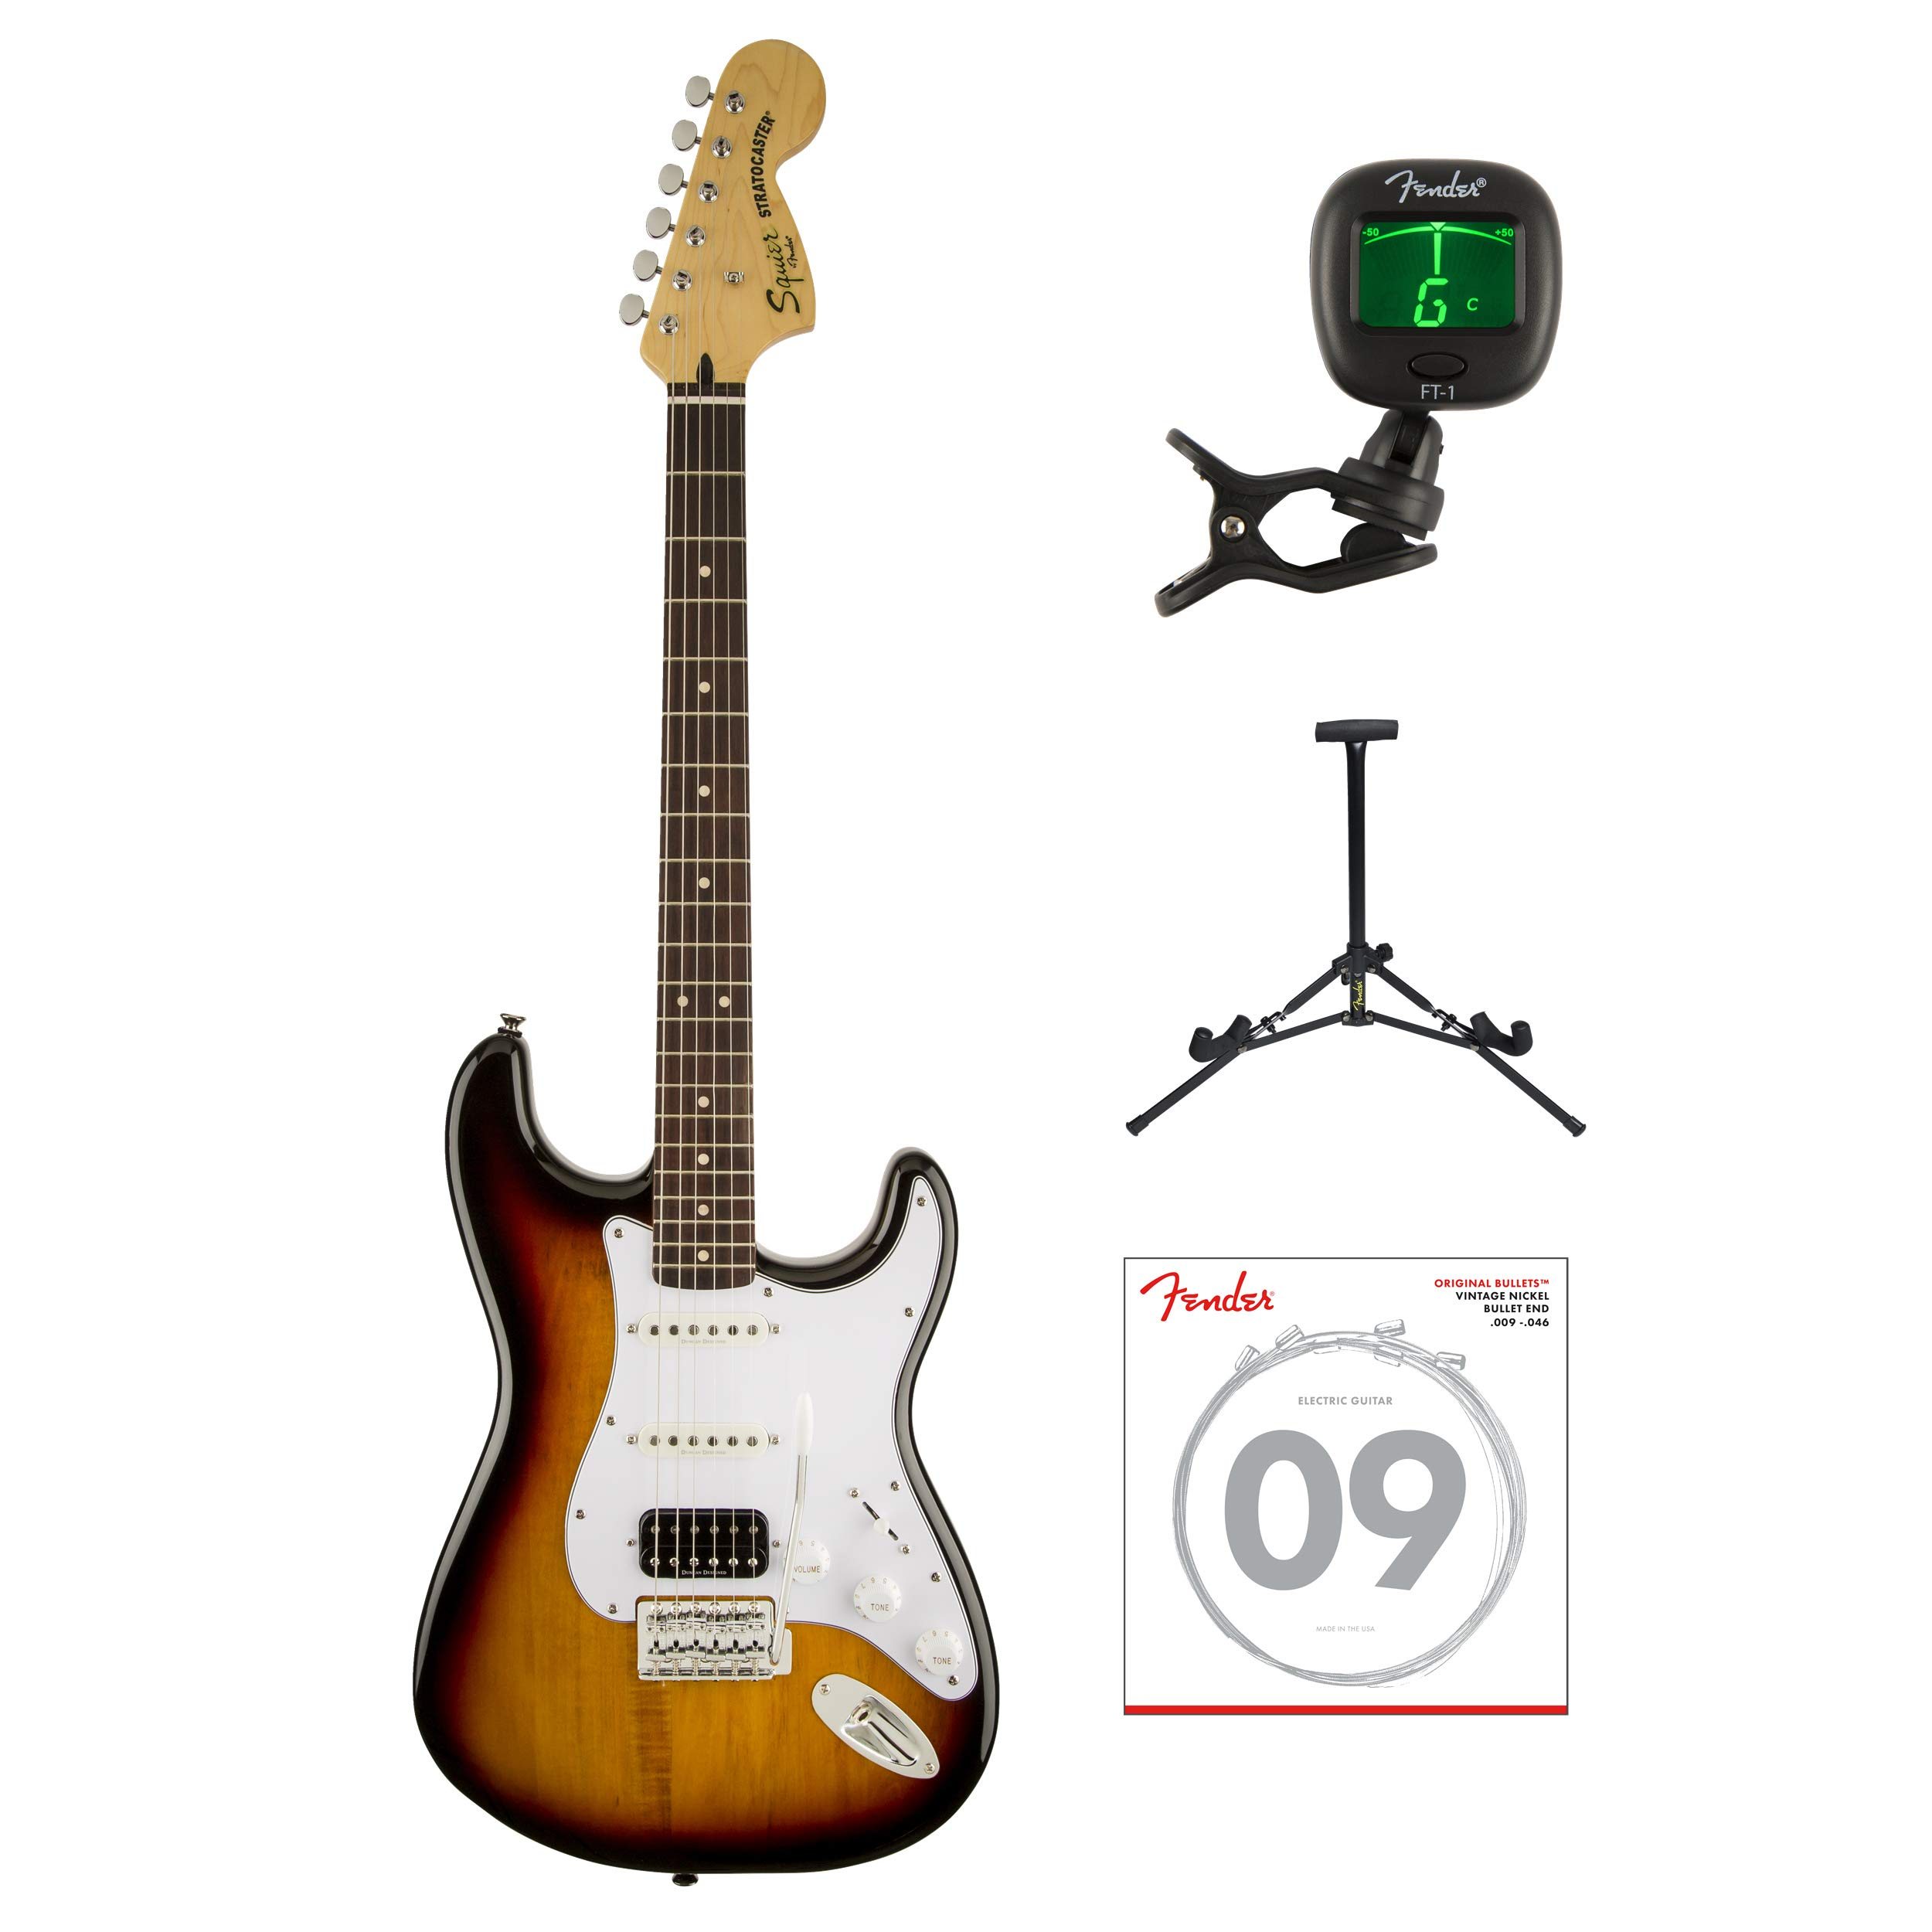 Cheap Fender Squier Vintage Modified Stratocaster Electric Guitar HSS with Tuner Strings & Stand (3-Tone Sunburst) Black Friday & Cyber Monday 2019